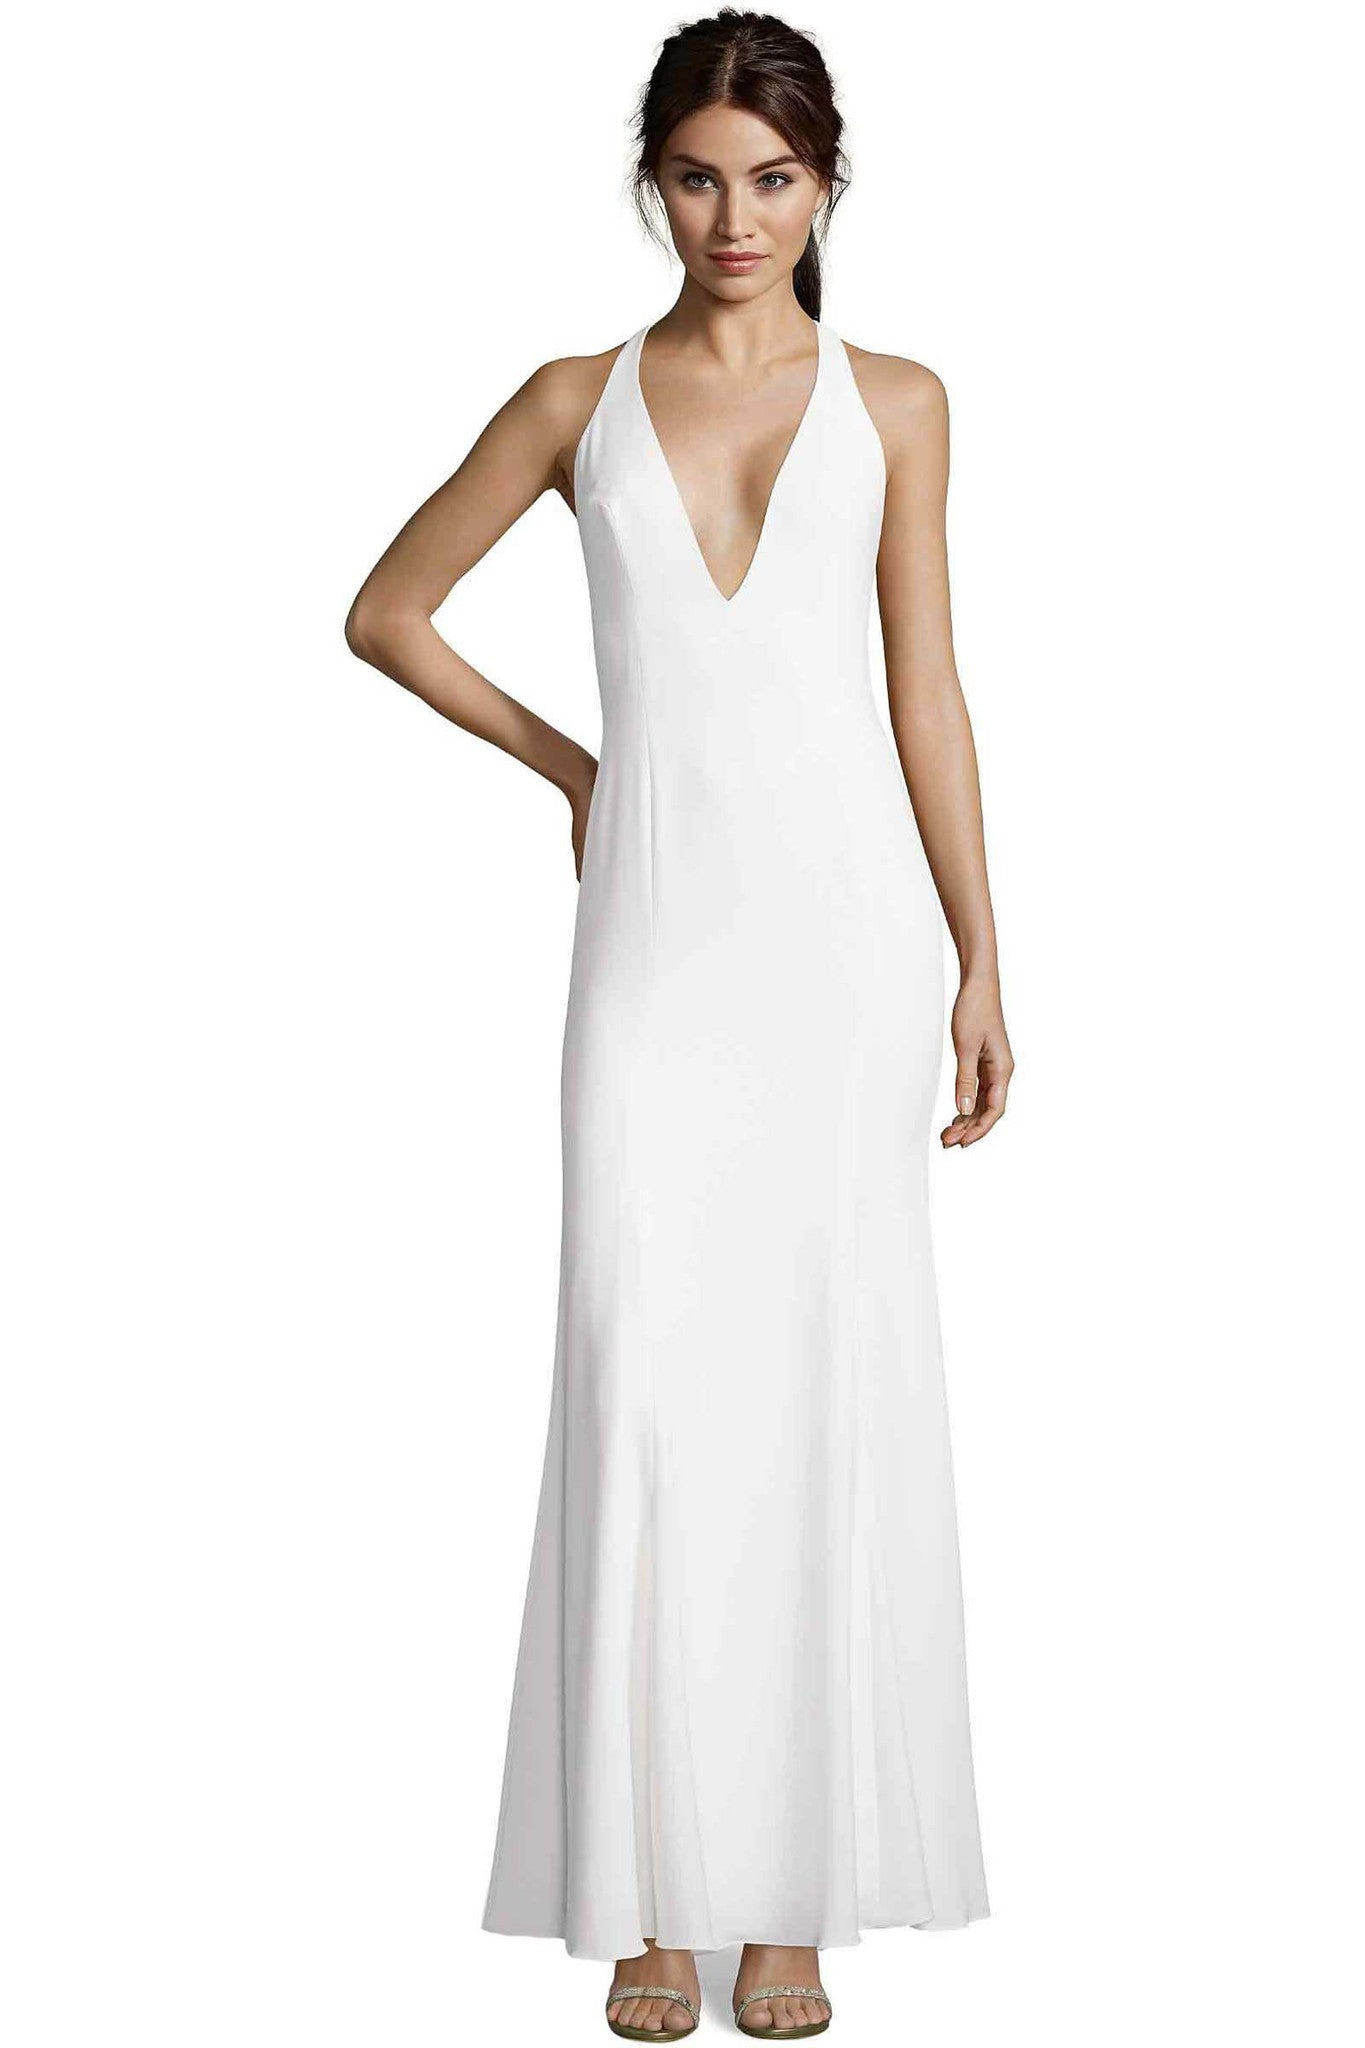 Jay Godfrey Deep V Neck Ivory Gown - Front View